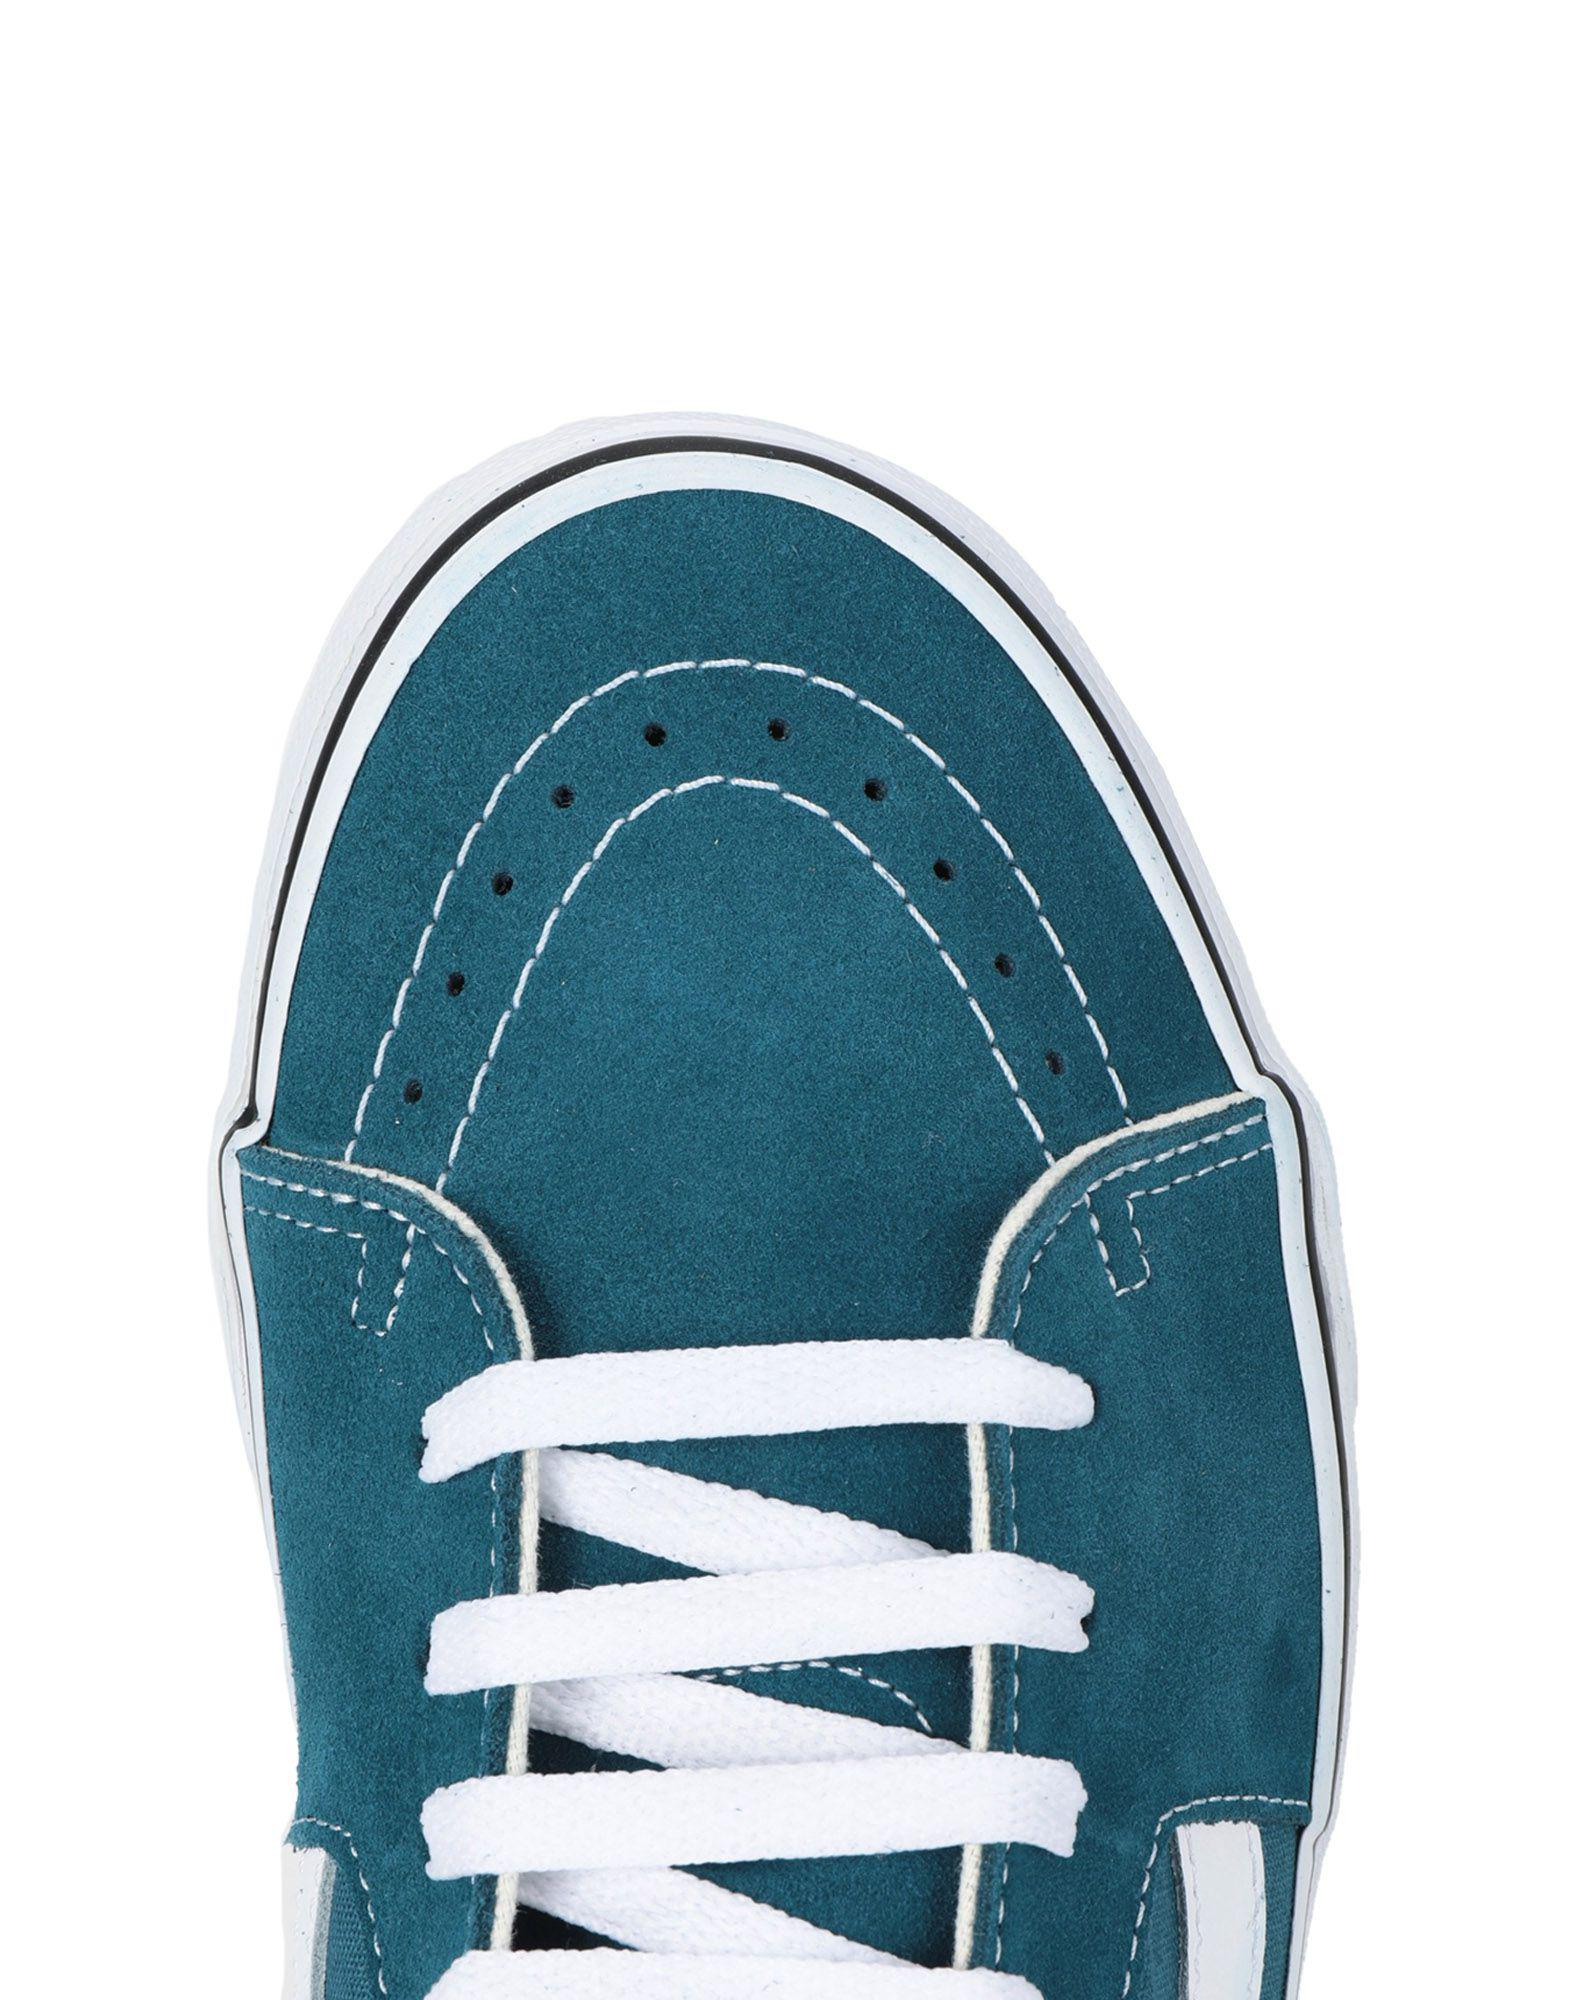 Vans Canvas High-tops & Sneakers in Turquoise (Blue) for Men - Lyst